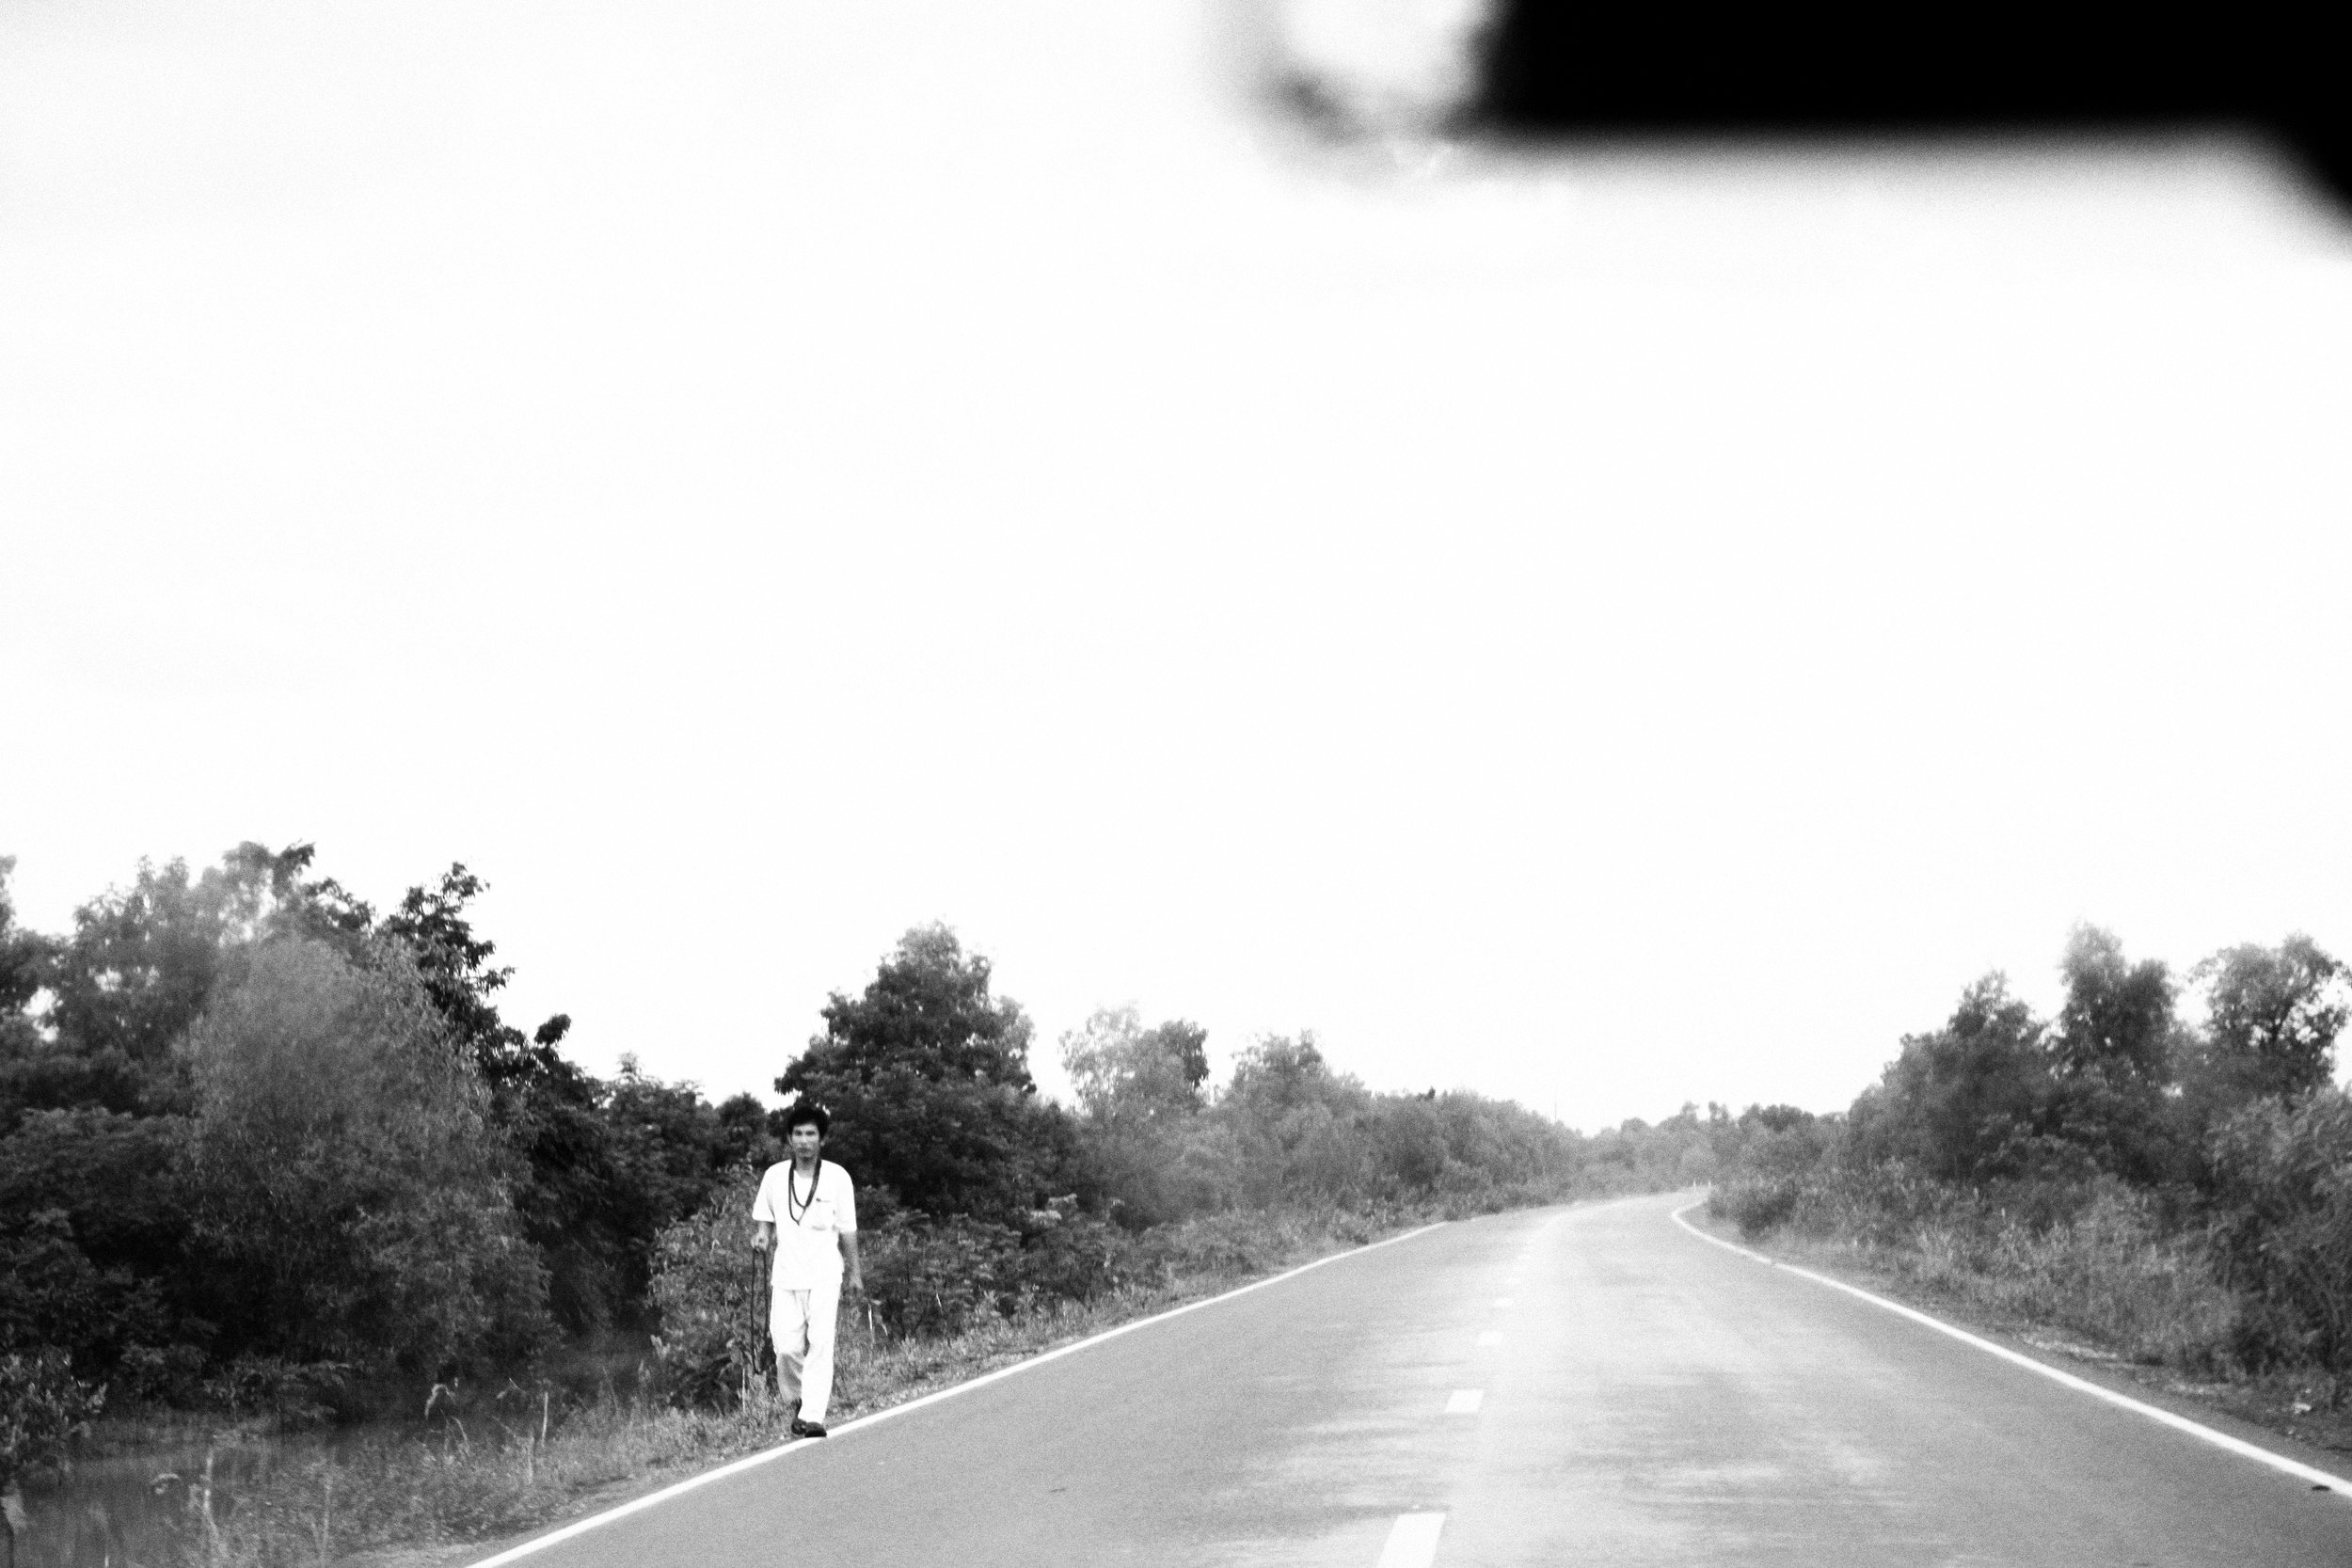 The Prayer on the Road